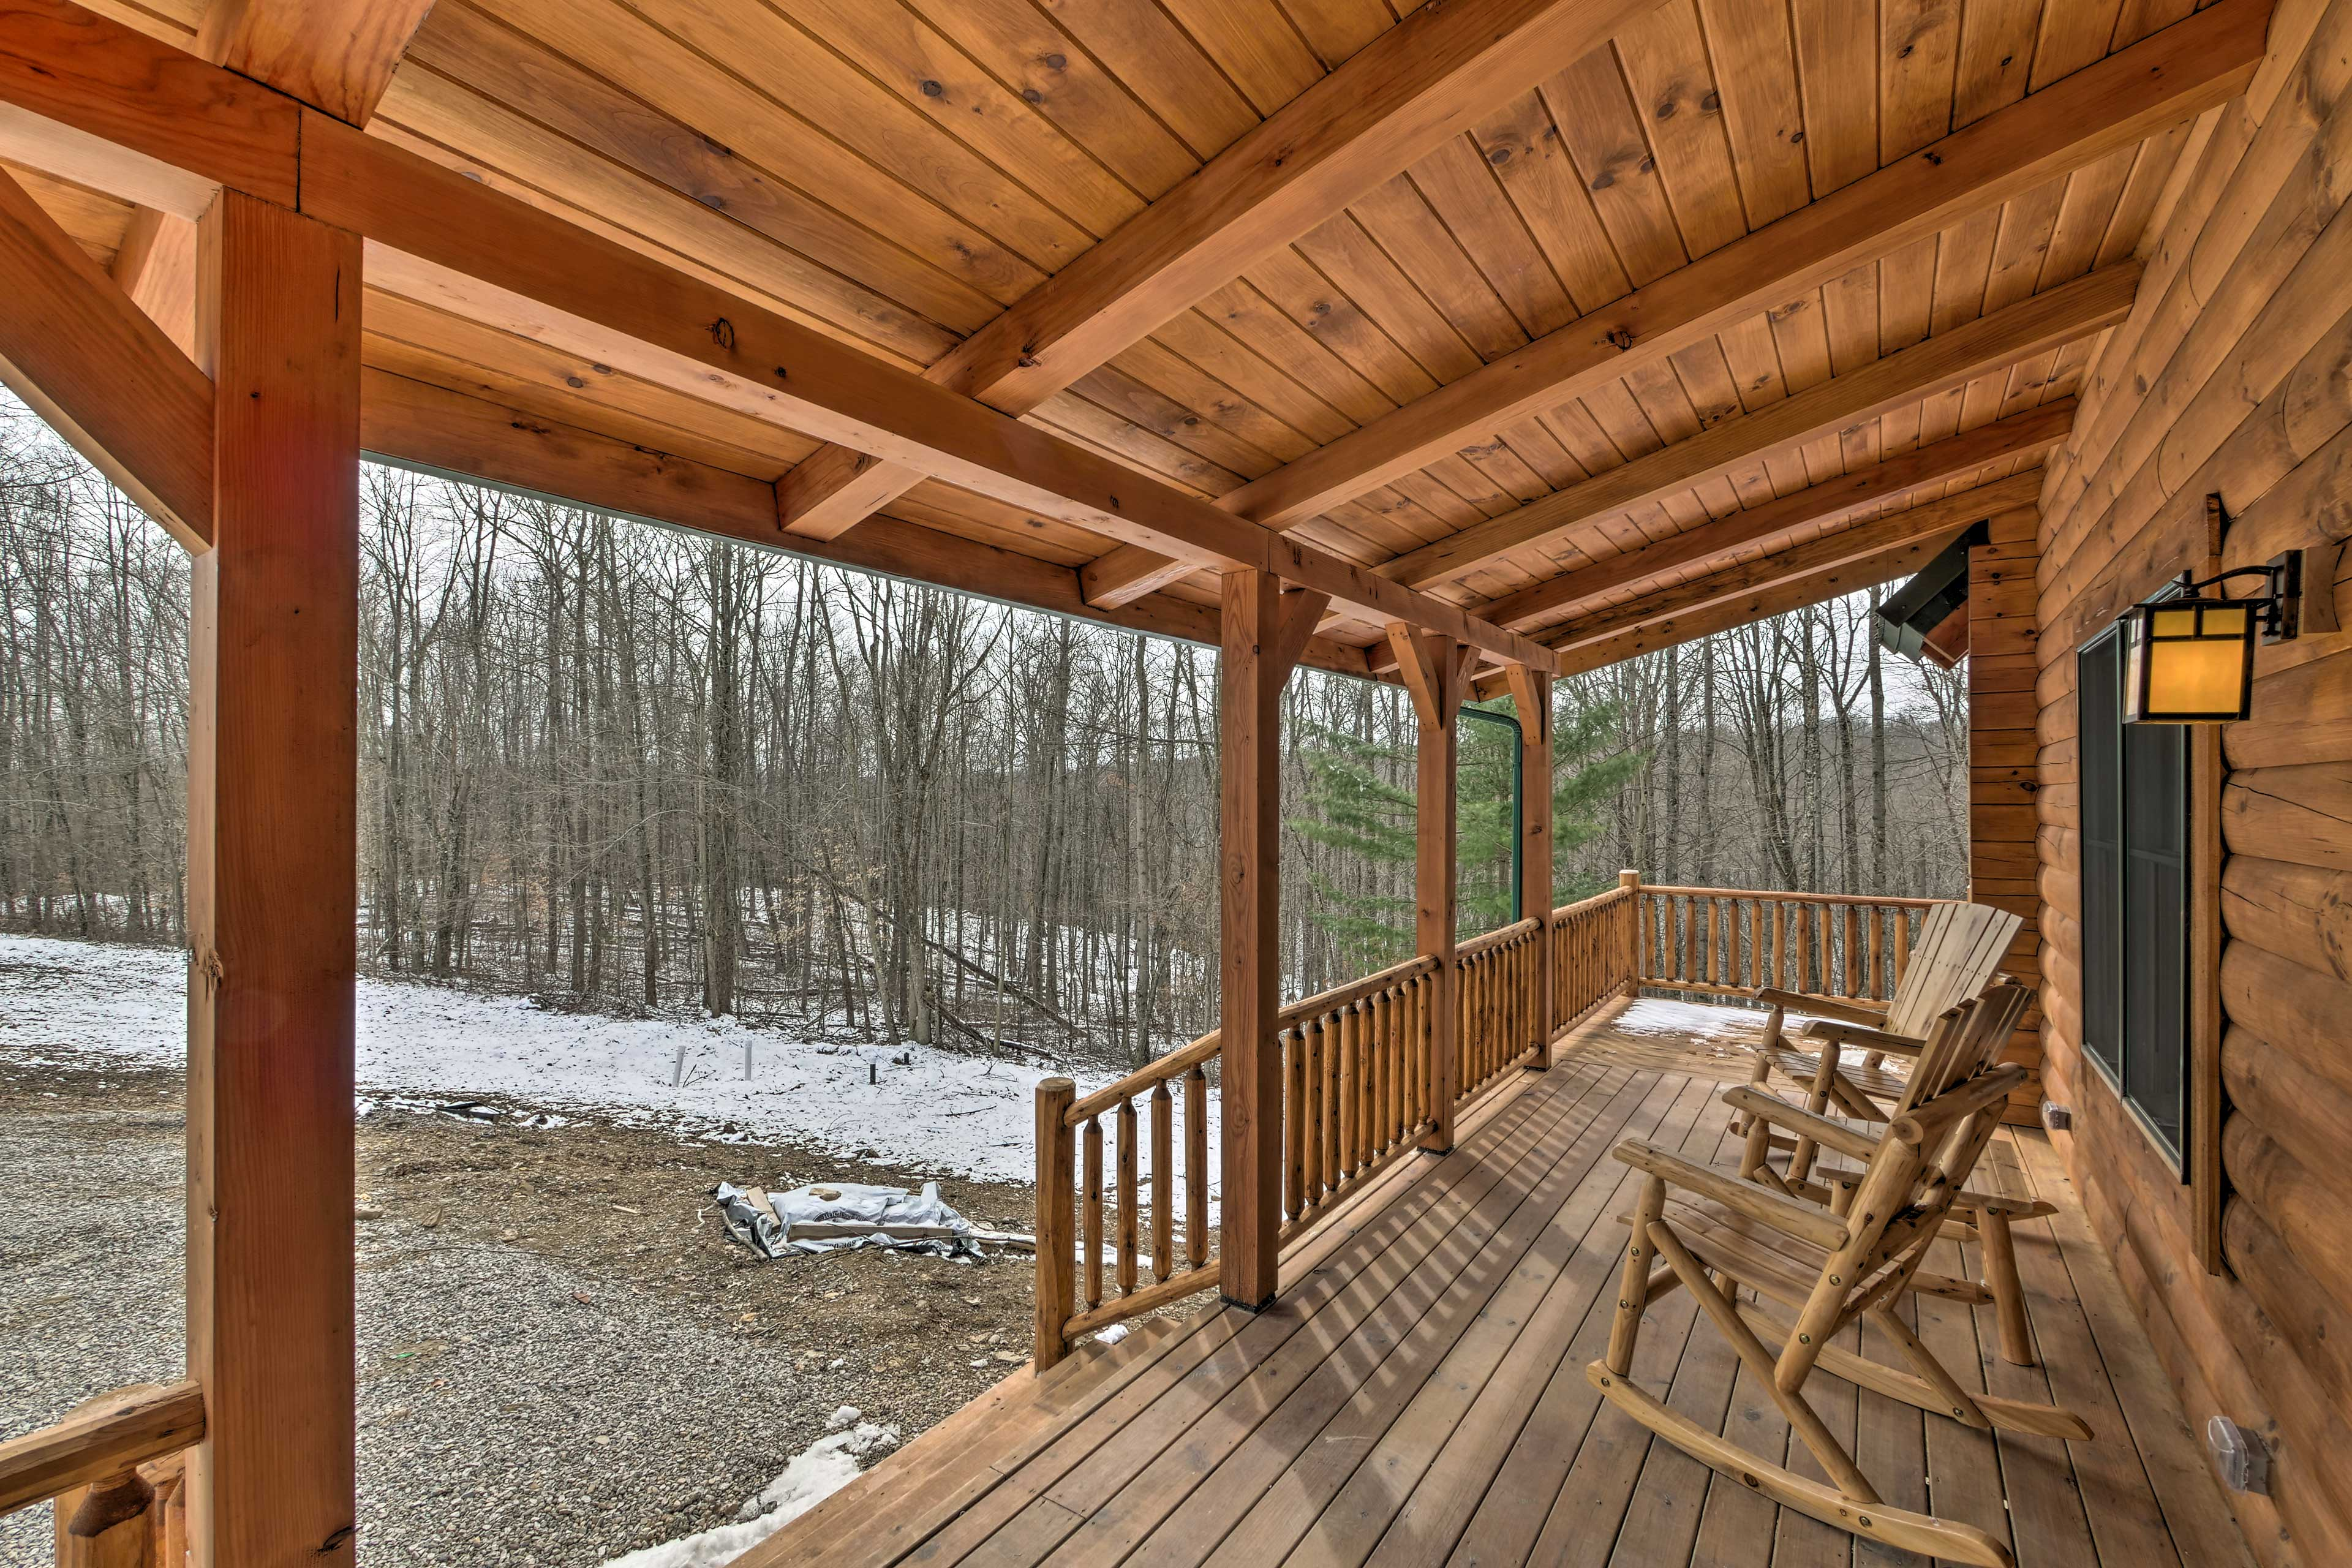 The vacation rental cabin has delightful wooded views.